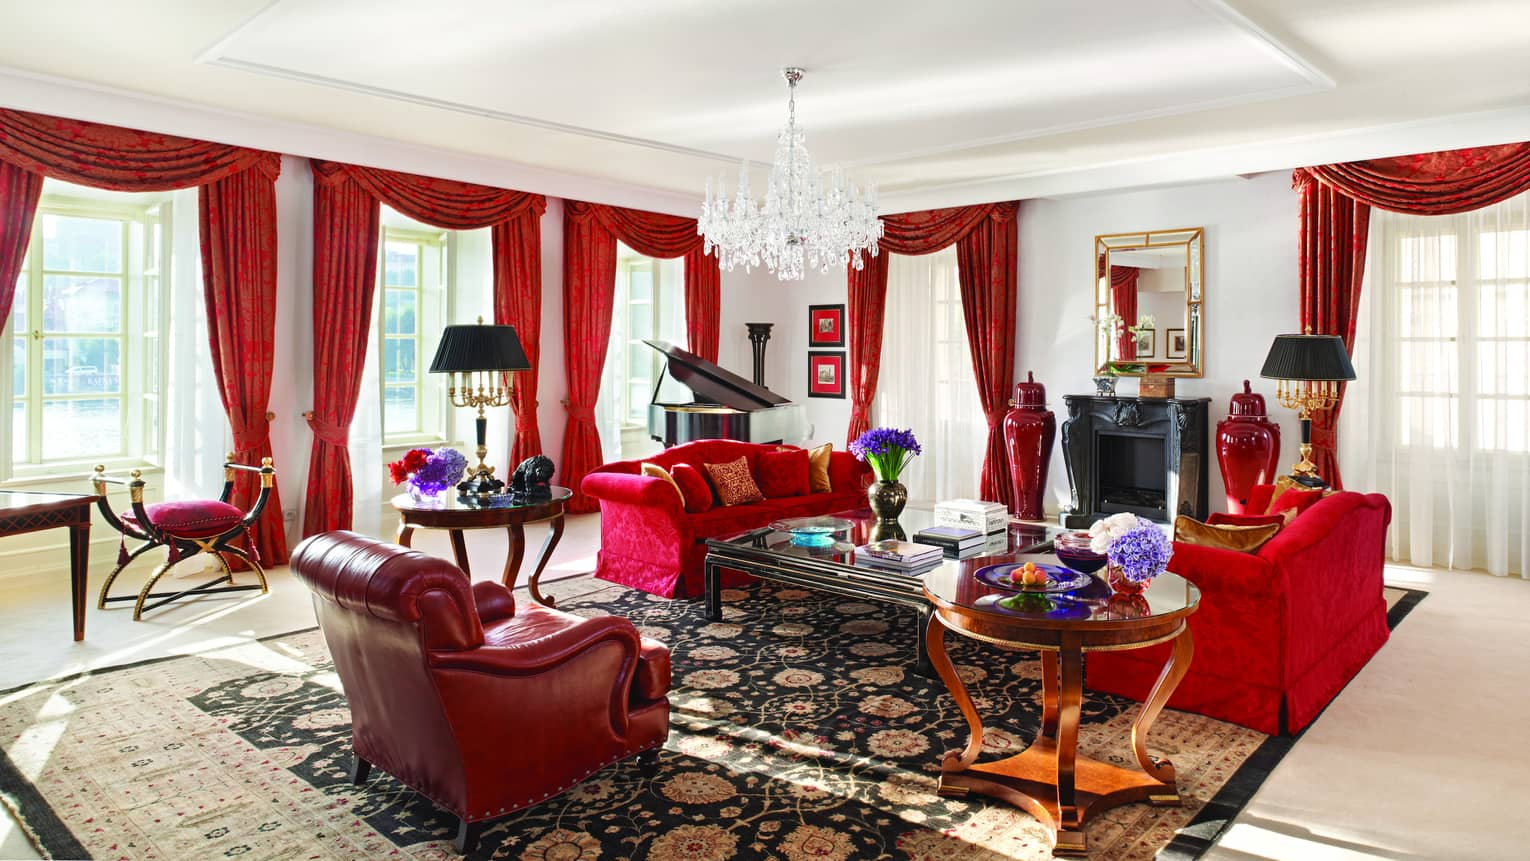 Presidential Suite with red sofas and armchair, red curtains on sunny corner windows, crystal chandelier